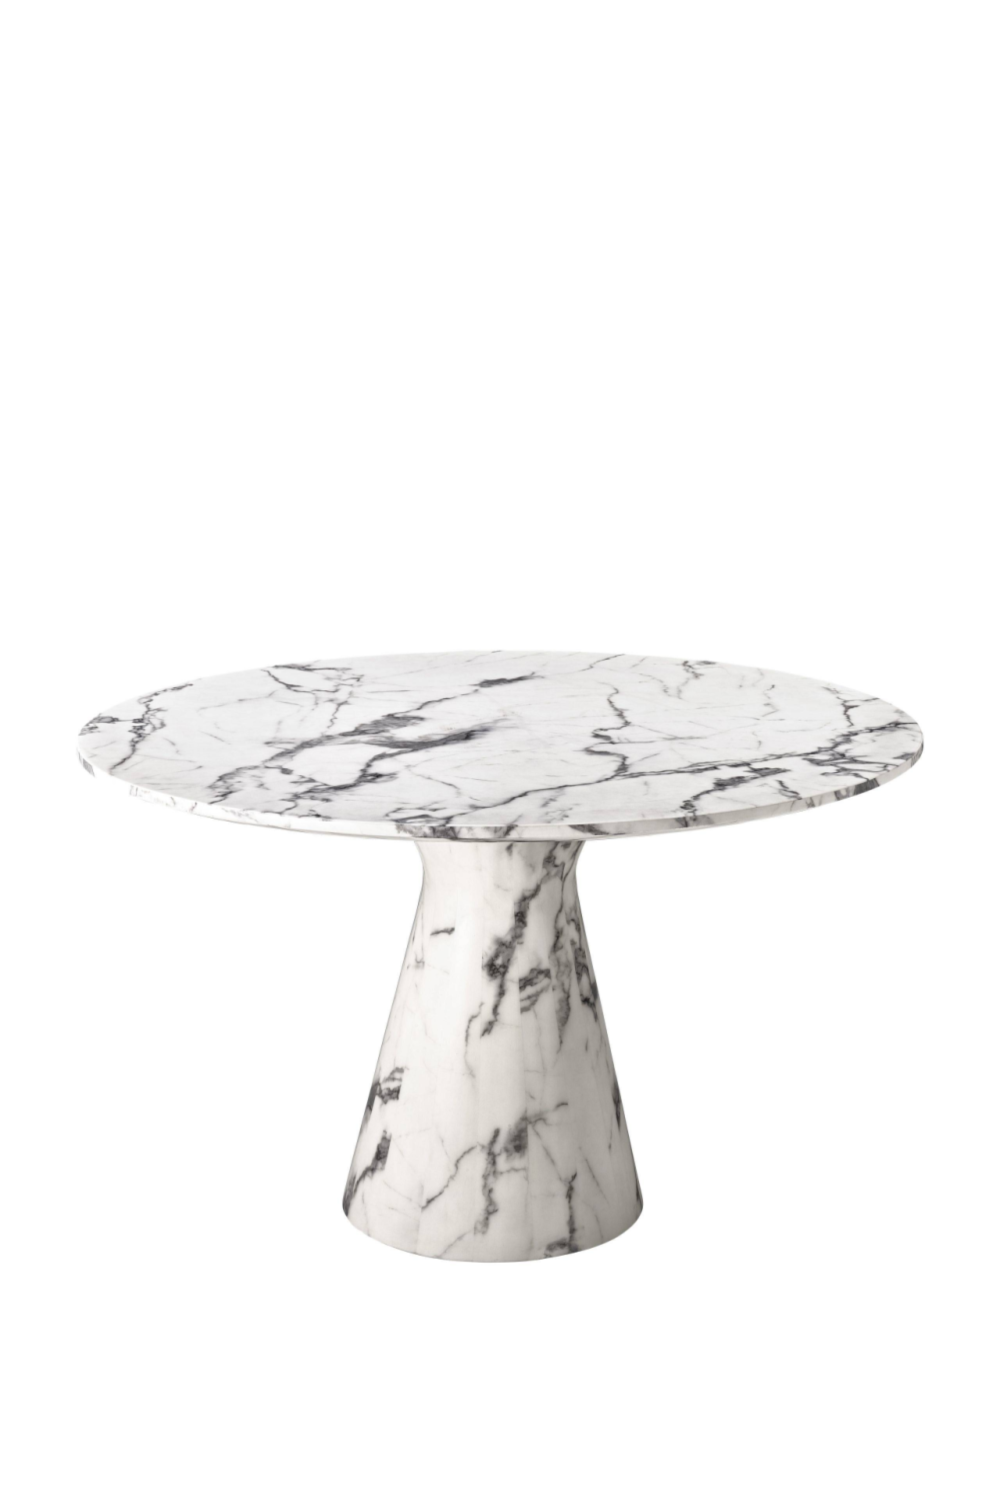 White Marble Dining Table | Eichholtz Turner | #1 Eichholtz Retailer